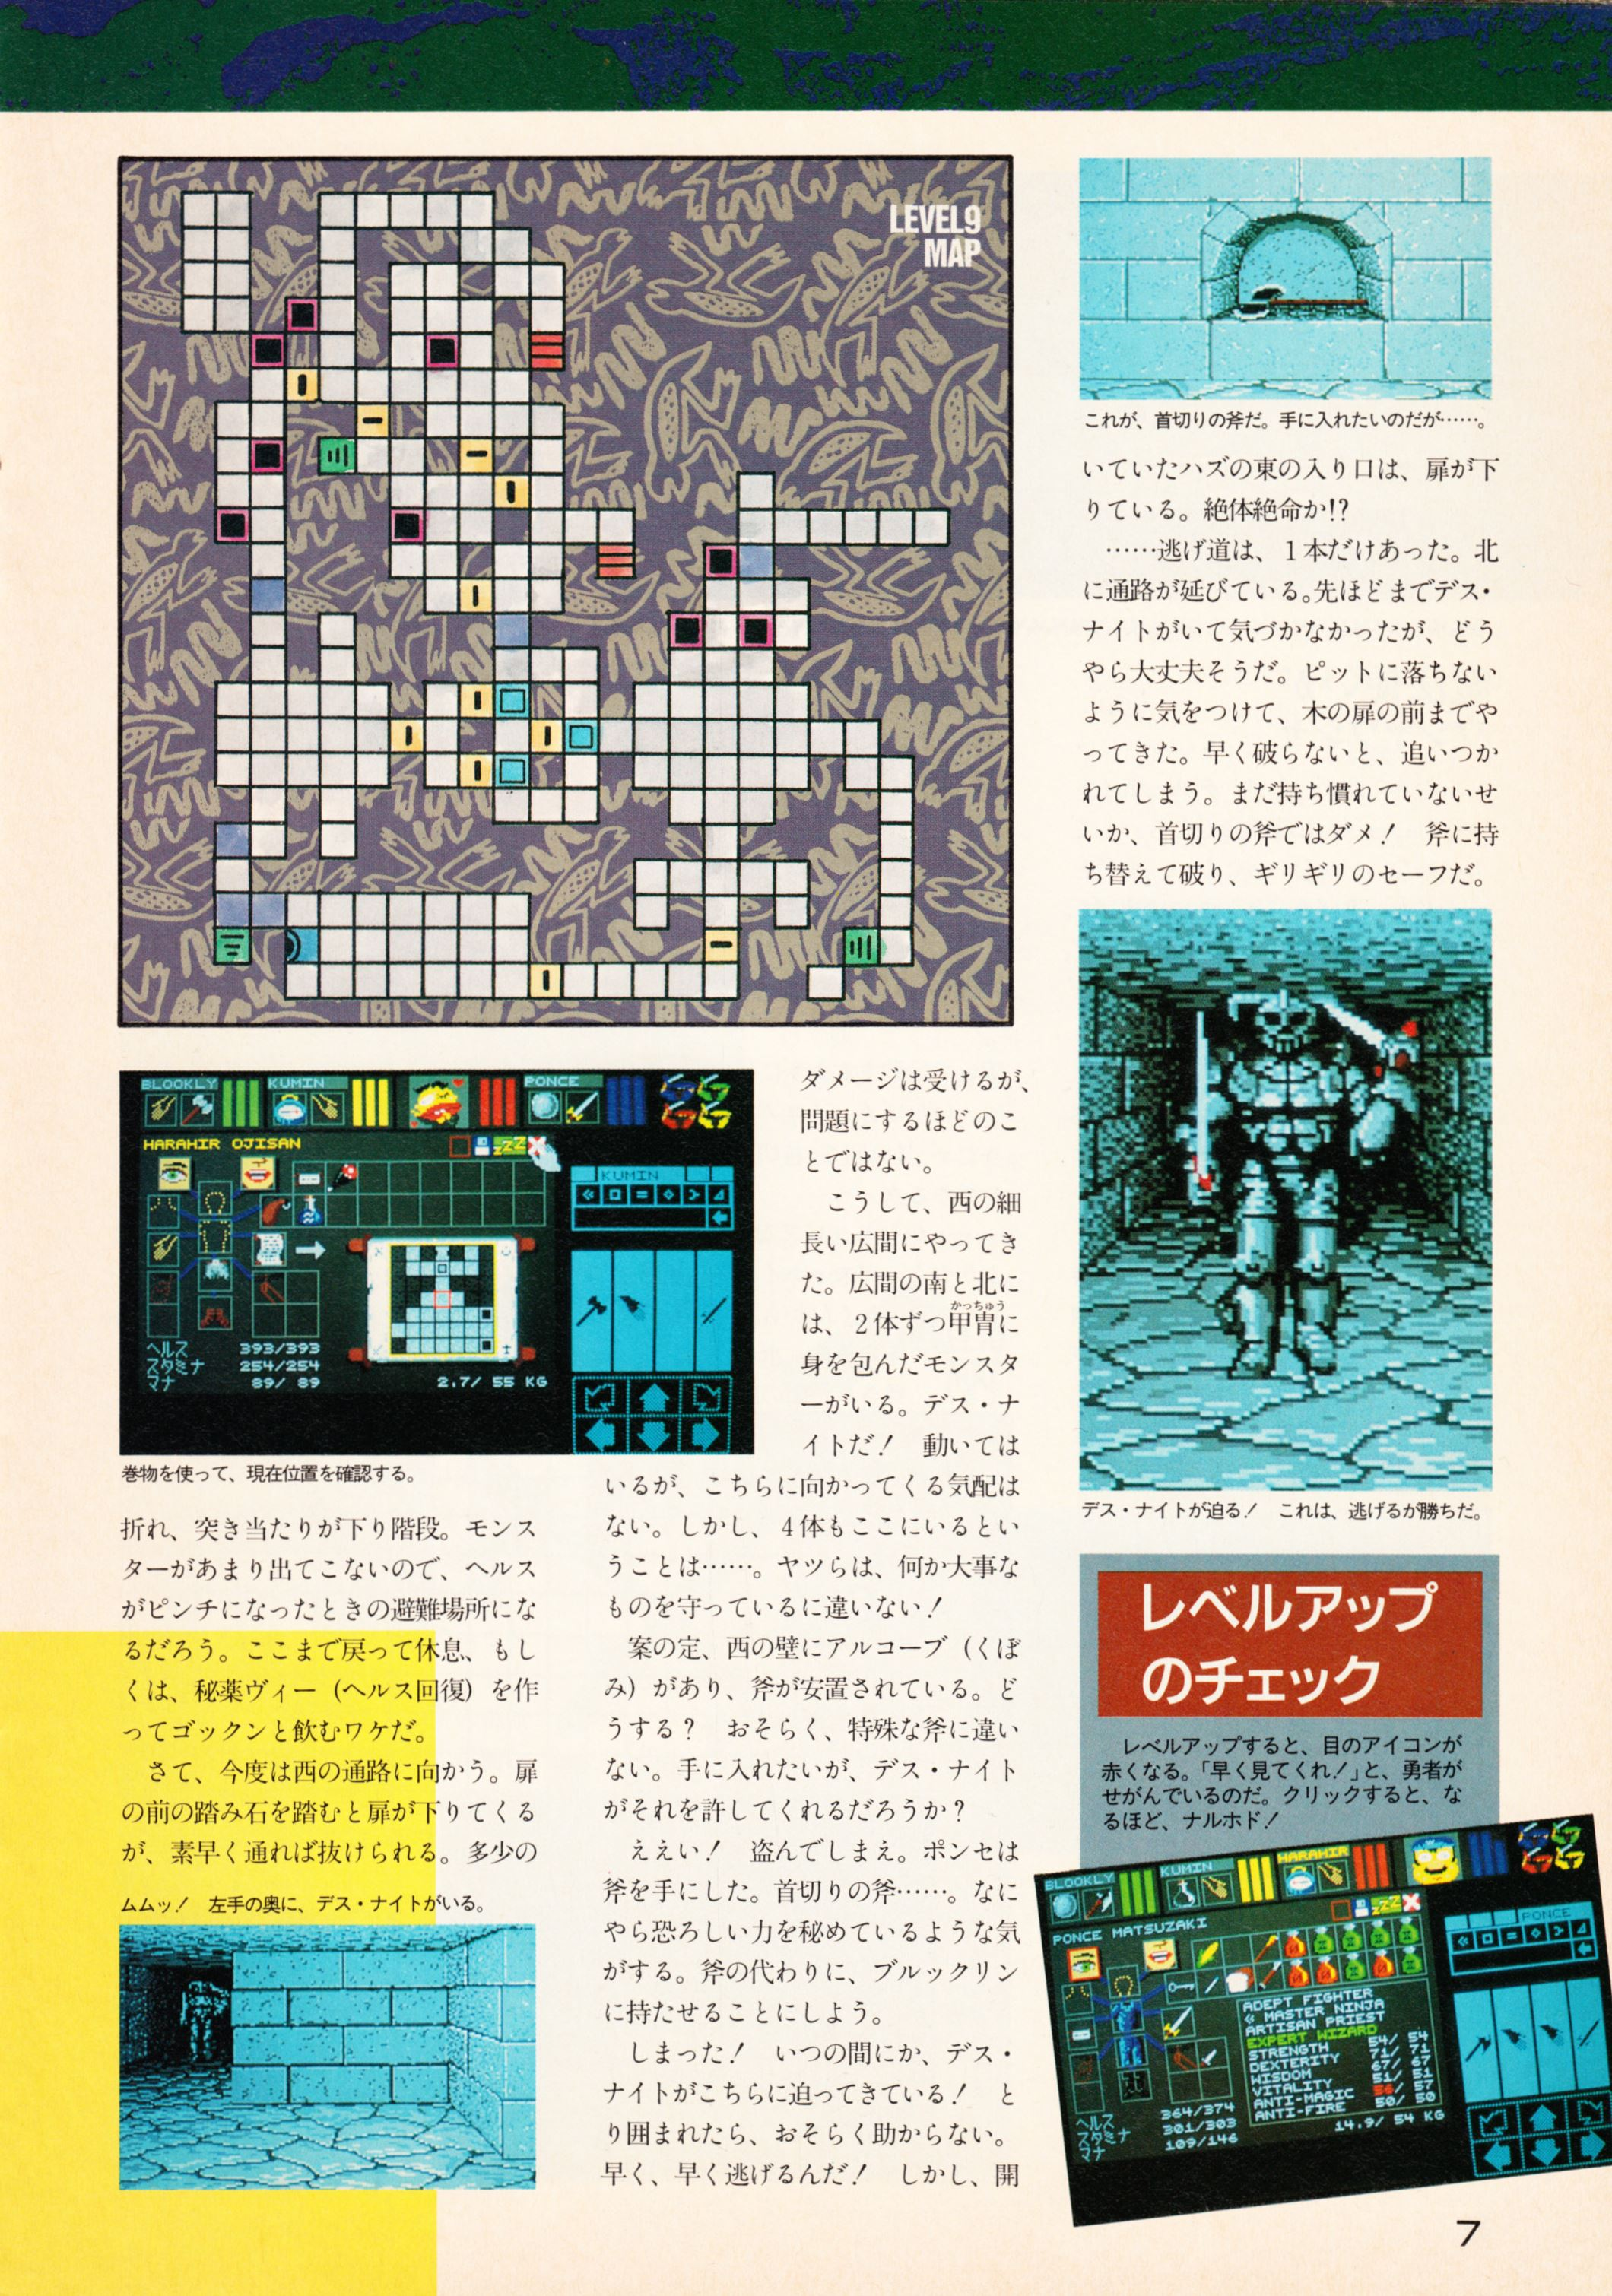 Supplement 1 - Chaos Strikes Back Companion Guide Guide published in Japanese magazine 'Popcom', Vol 9 No 2 01 February 1991, Page 9